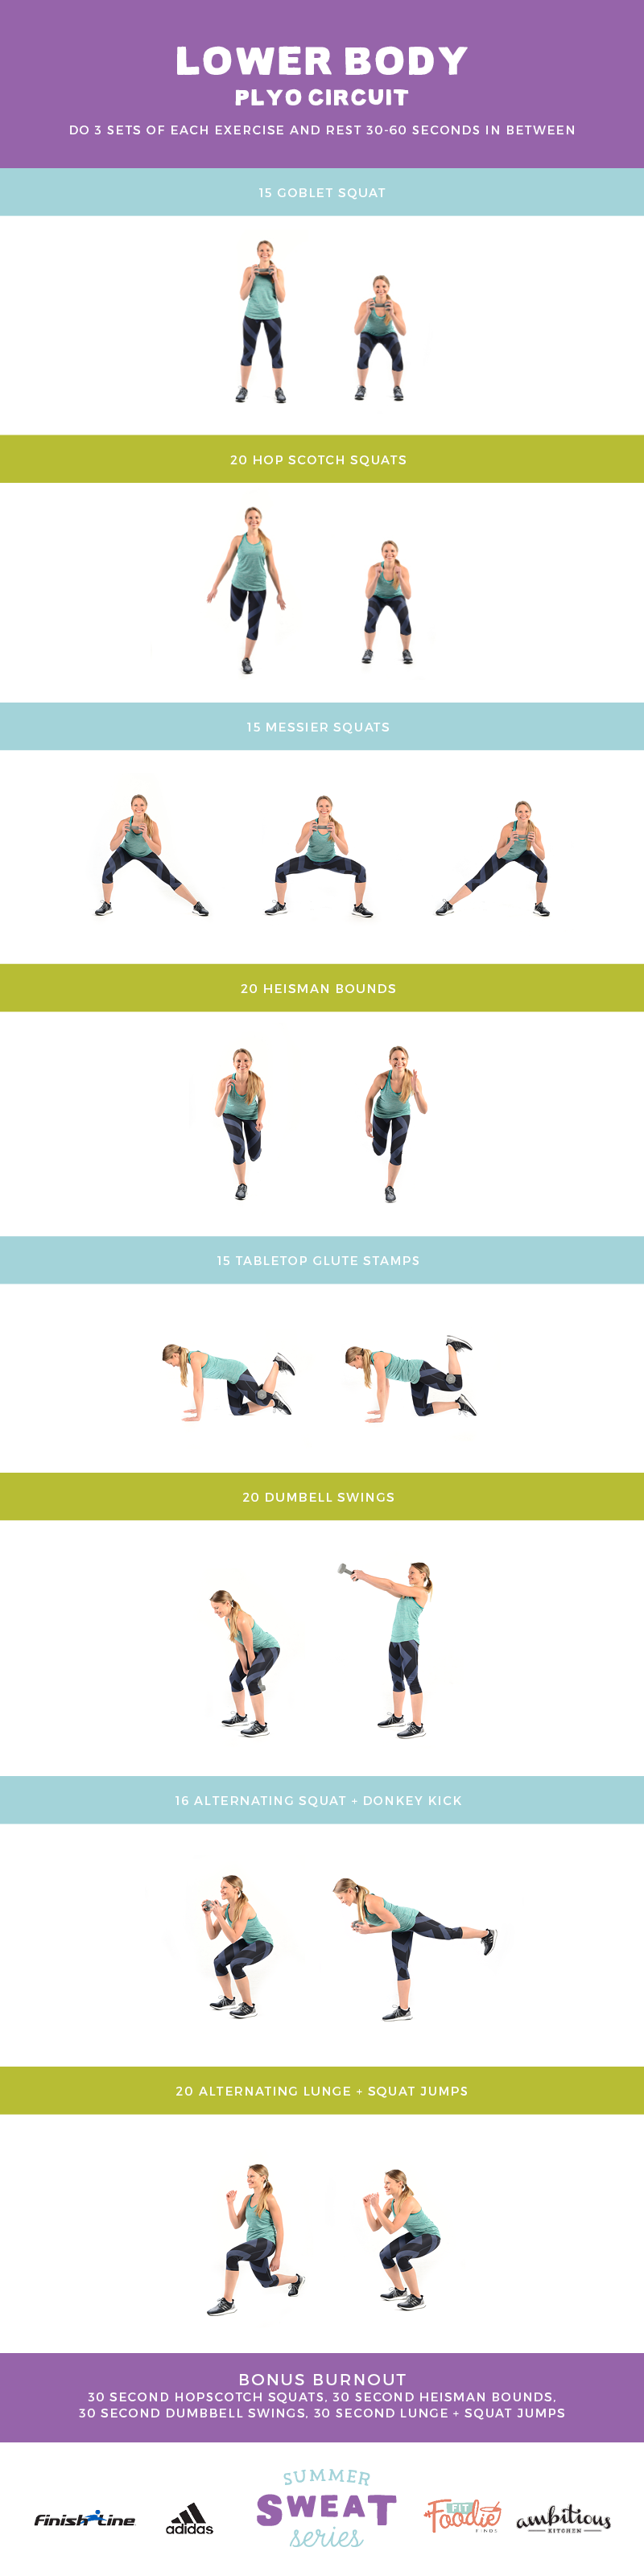 lower body plyometric workout graphic